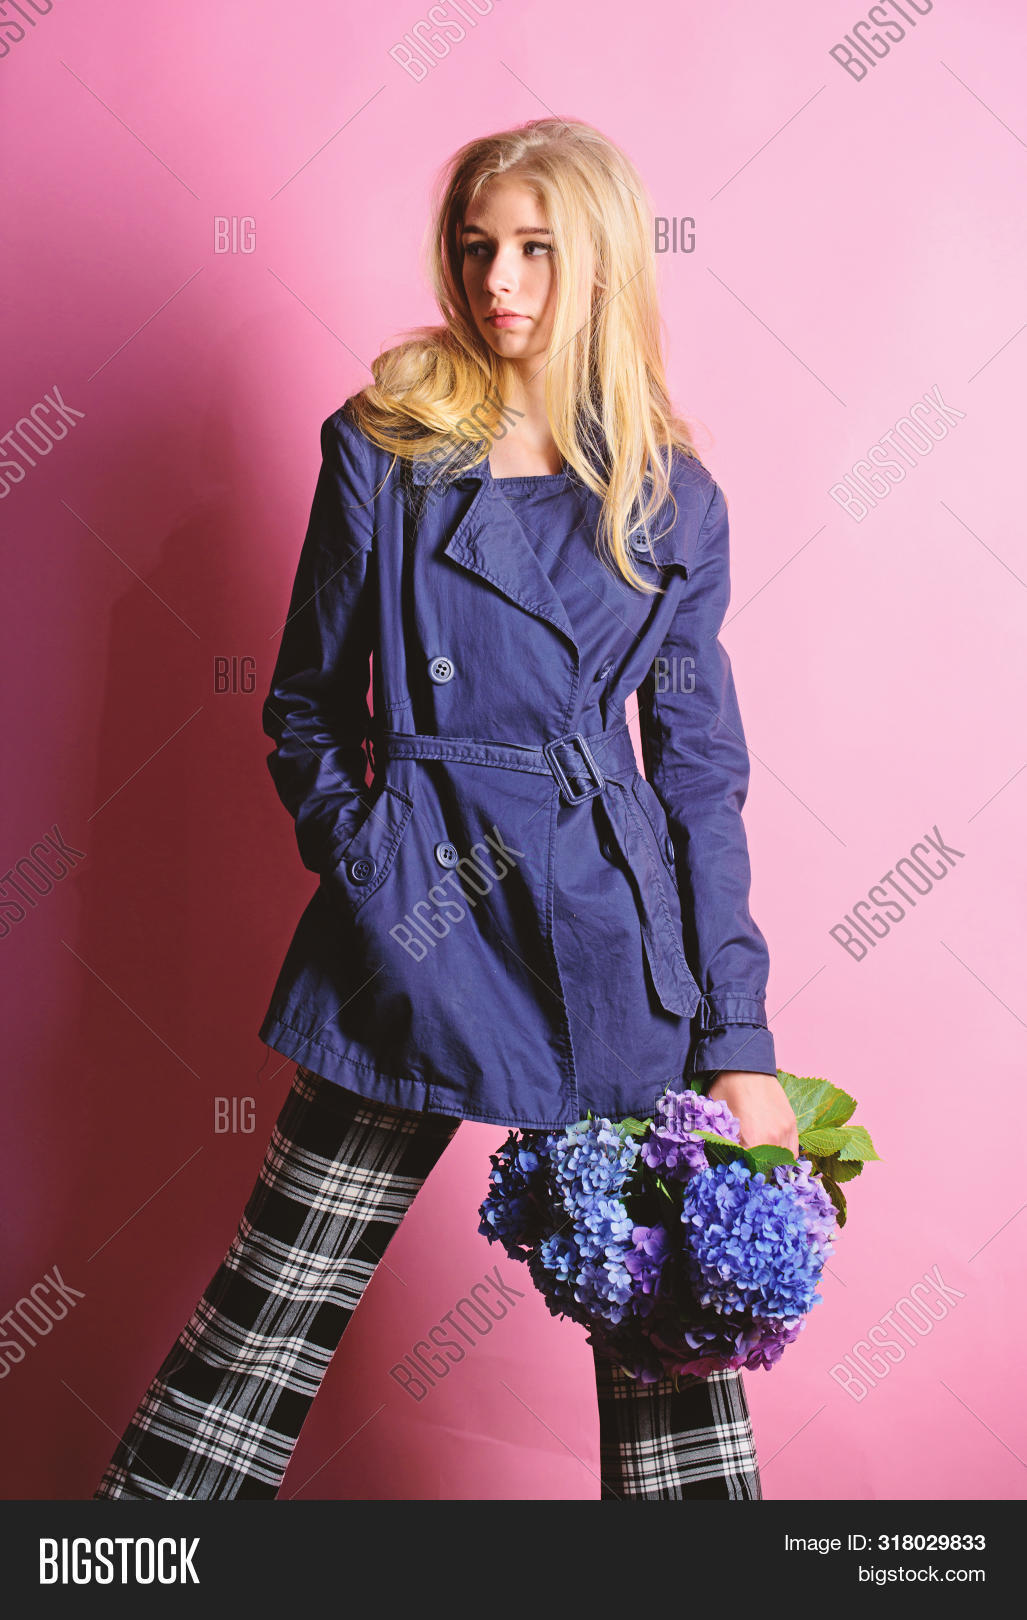 accessory,autumn,background,beautiful,beauty,blonde,bouquet,casual,clothes,coat,collar,concept,face,fashion,fashionable,female,flowers,girl,grey,hair,have,hipster,jacket,life,lifestyle,makeup,model,modern,must,natural,people,person,posing,season,shopping,spring,street,style,stylish,trench,trenchcoat,trend,trendy,wear,woman,young